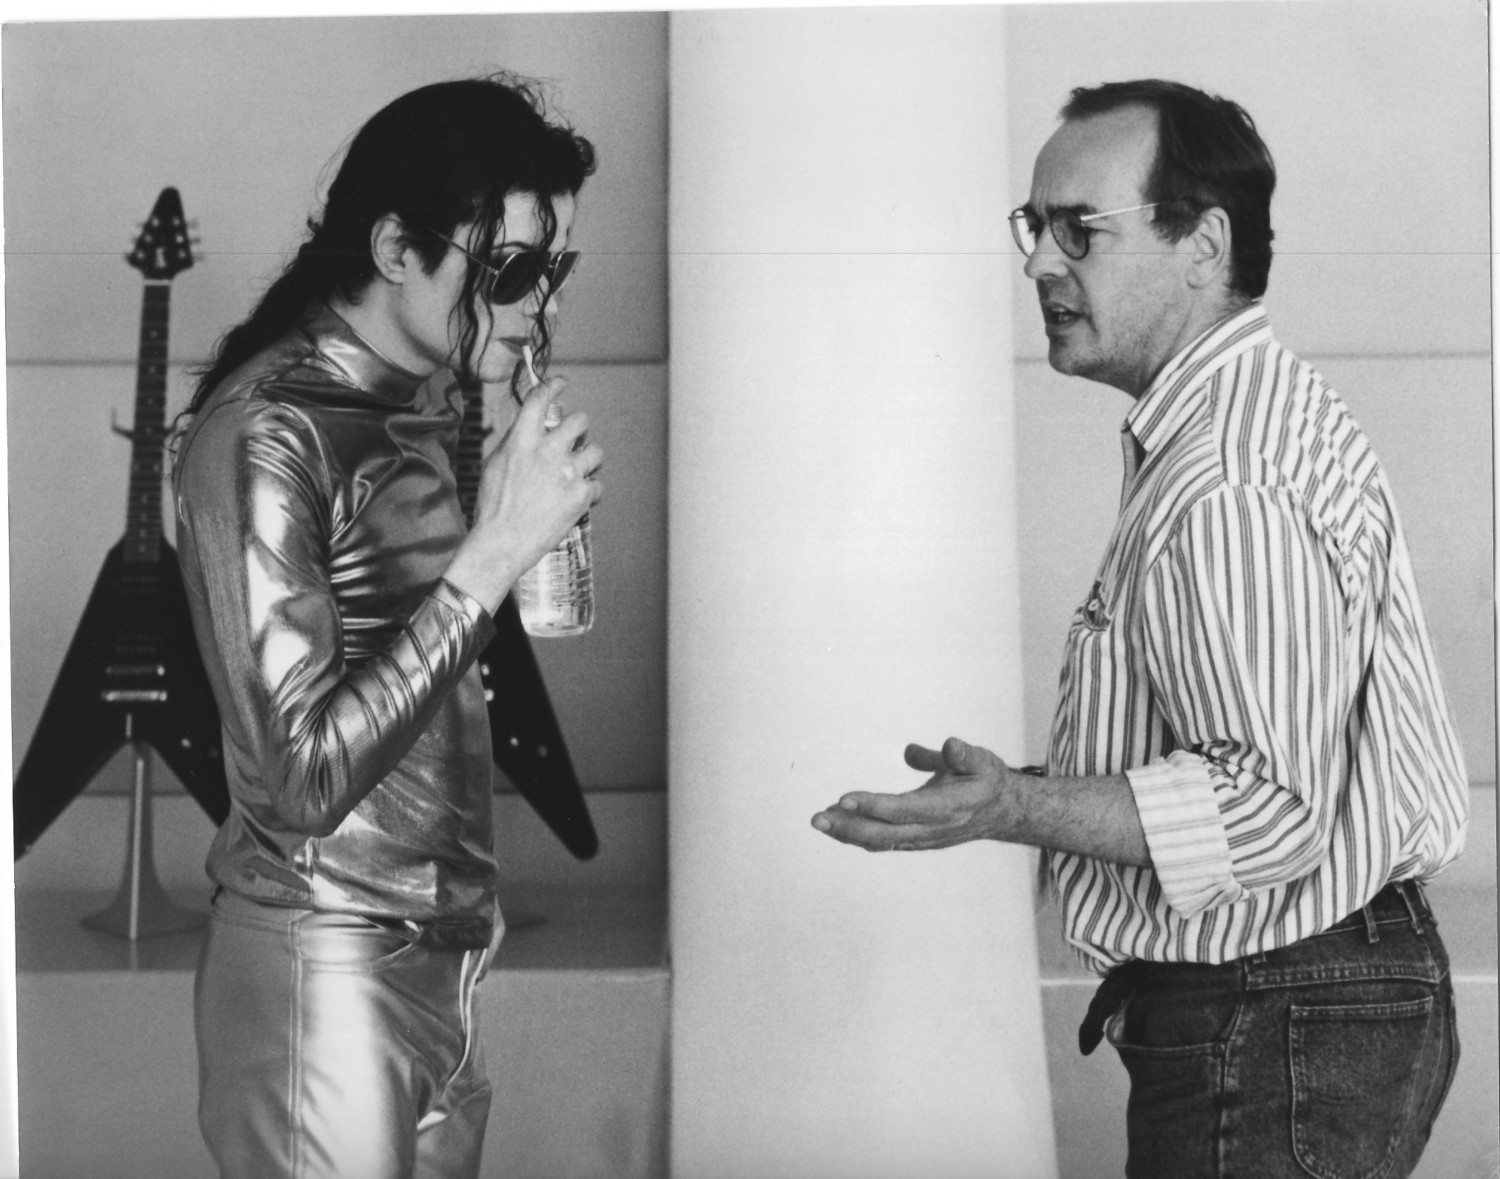 Rockville Centre resident Dan Beck with Michael Jackson, whom he worked with on more than a dozen music videos while at Epic Records.